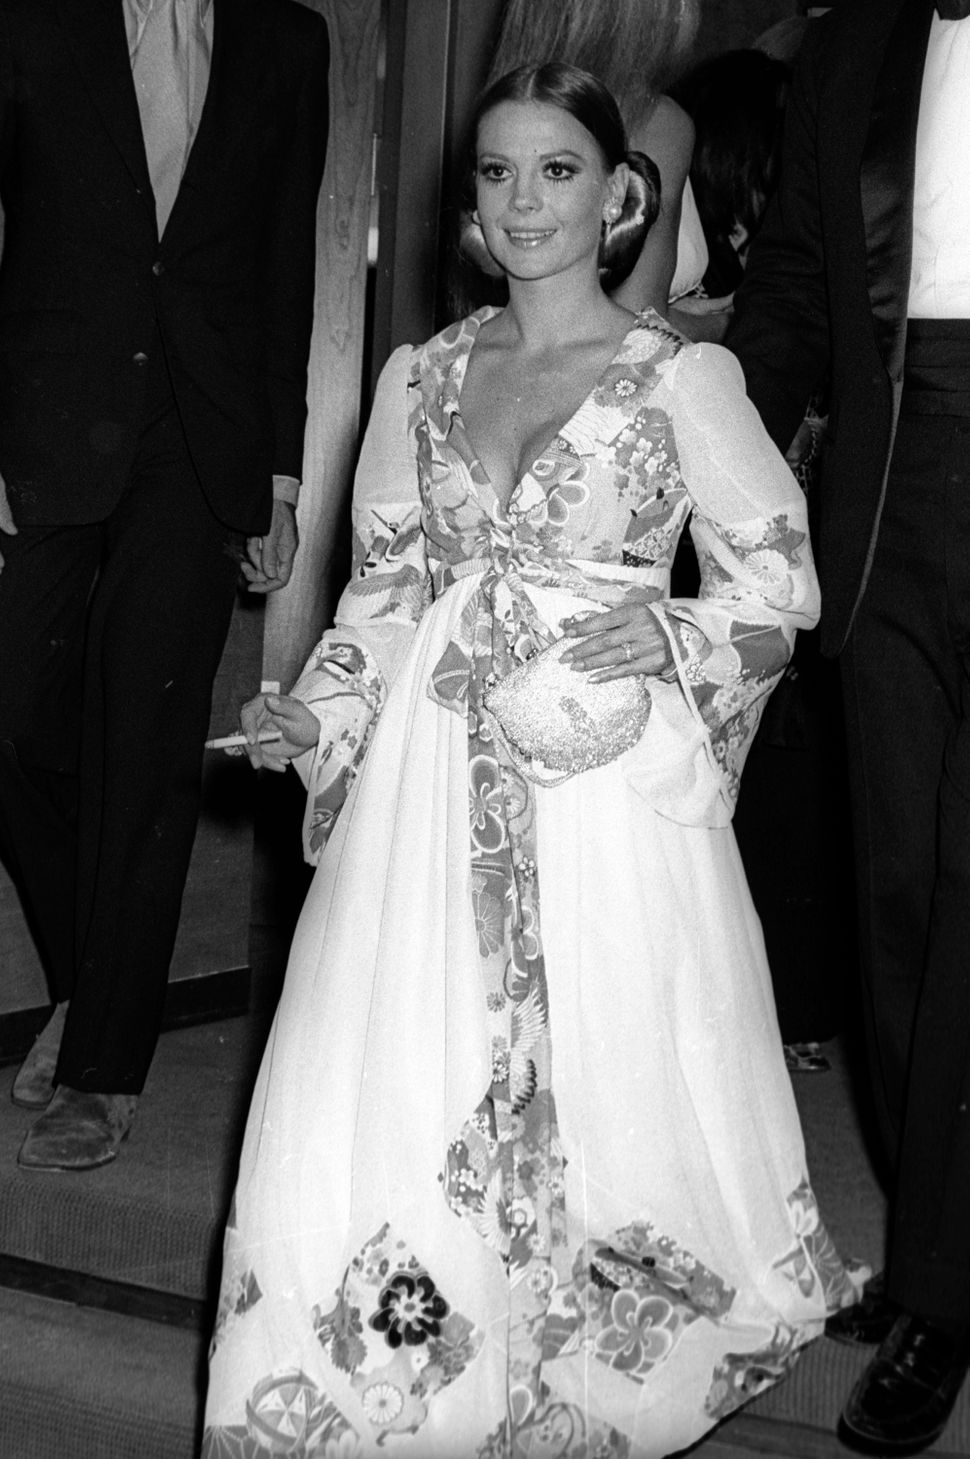 Actress Natalie Wood attends the opening of the New York Film Festival on Sept. 16, 1969 in New York City. (Photo by Ron Gale